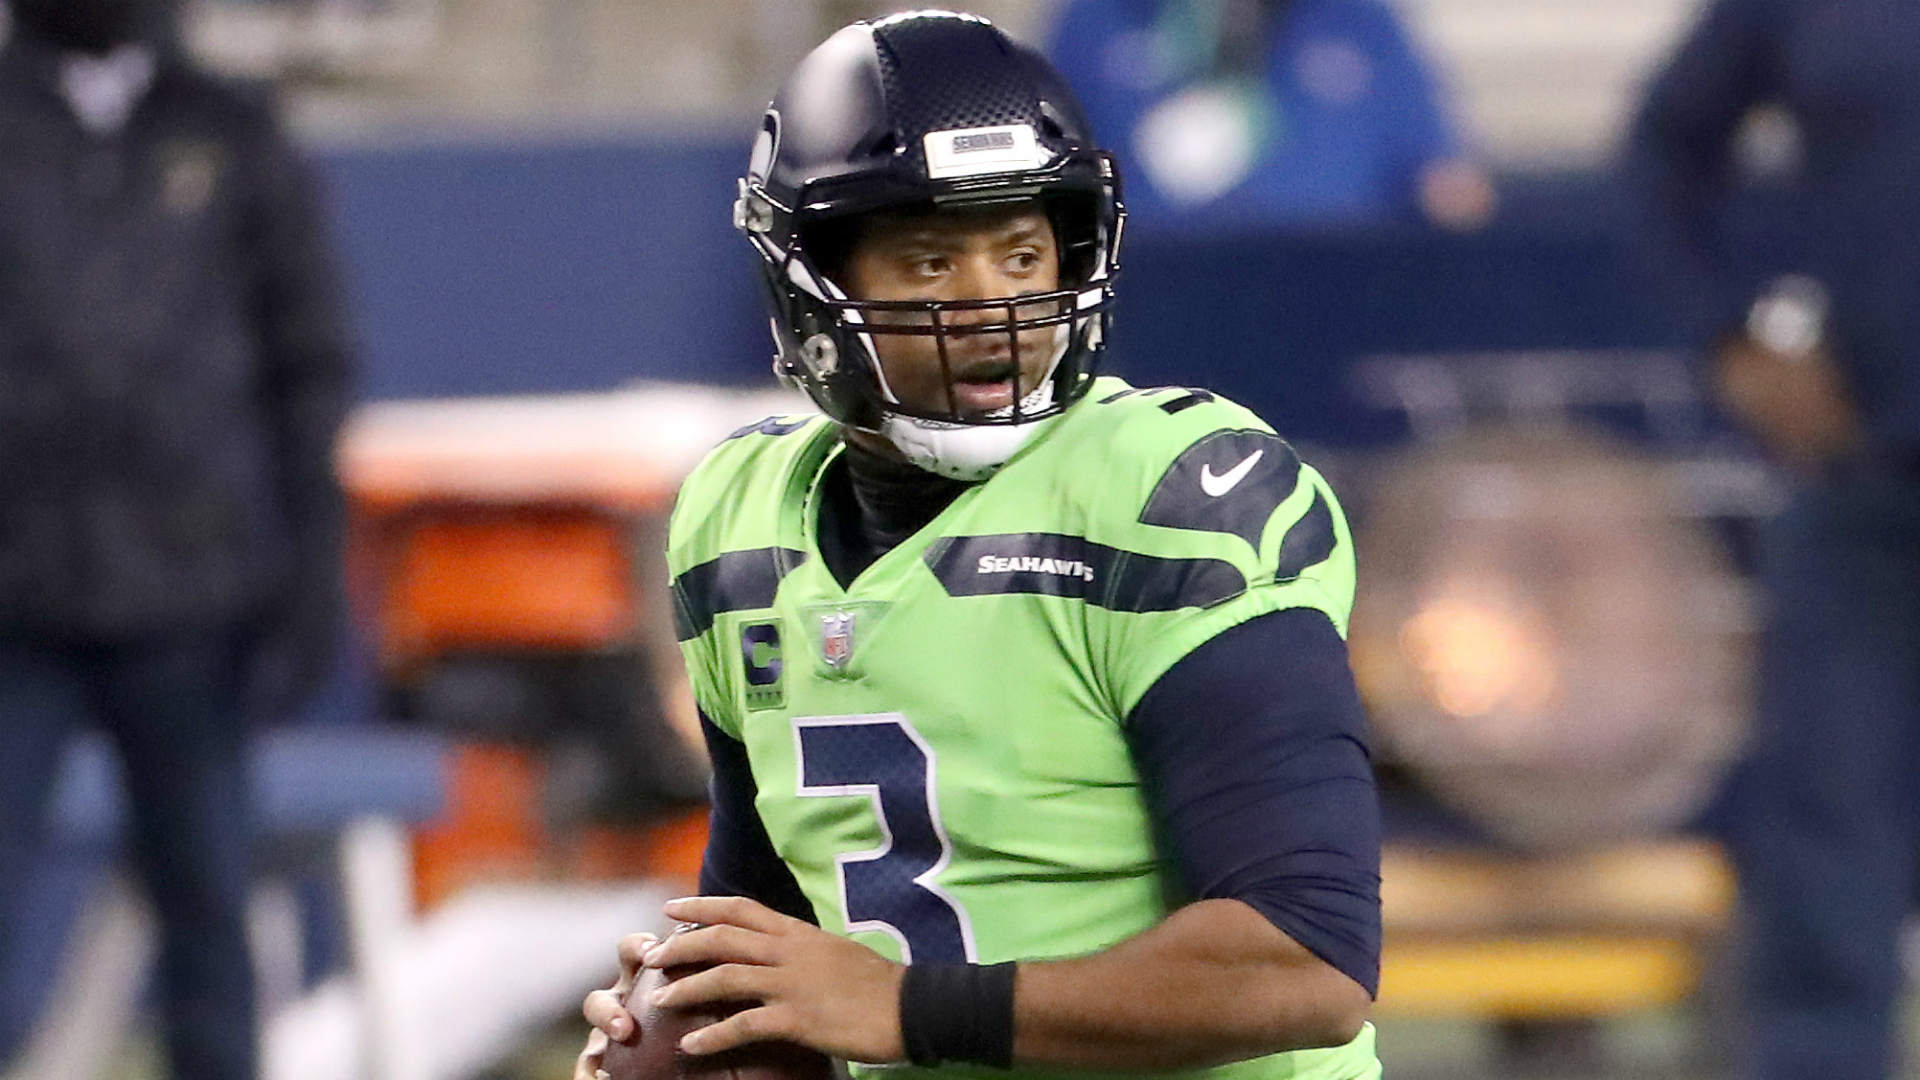 Carlos Dunlap said he sought assurances that Russell Wilson would still be in Seattle before re-signing with the Seahawks.